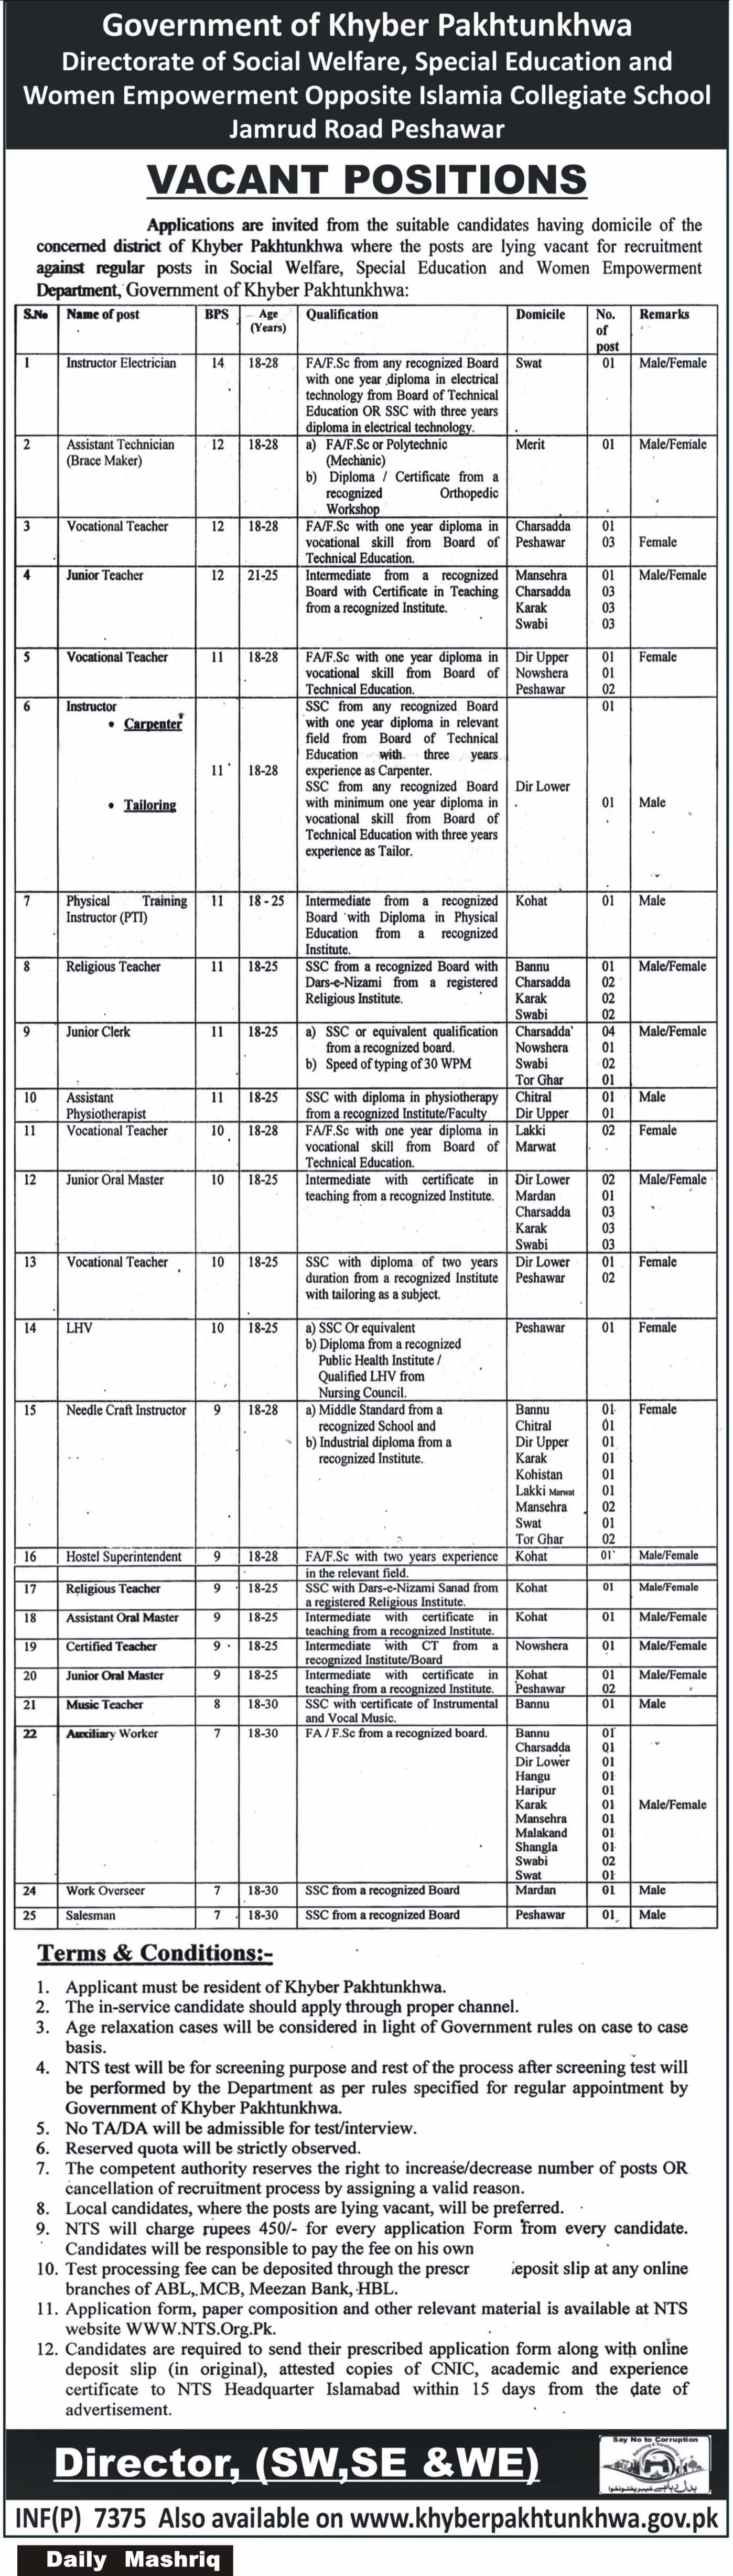 Directorate of Social Welfare, Special Education & Women Empowerment 91 Jobs, 02 January 2018. Daily Mashriq Newspaper